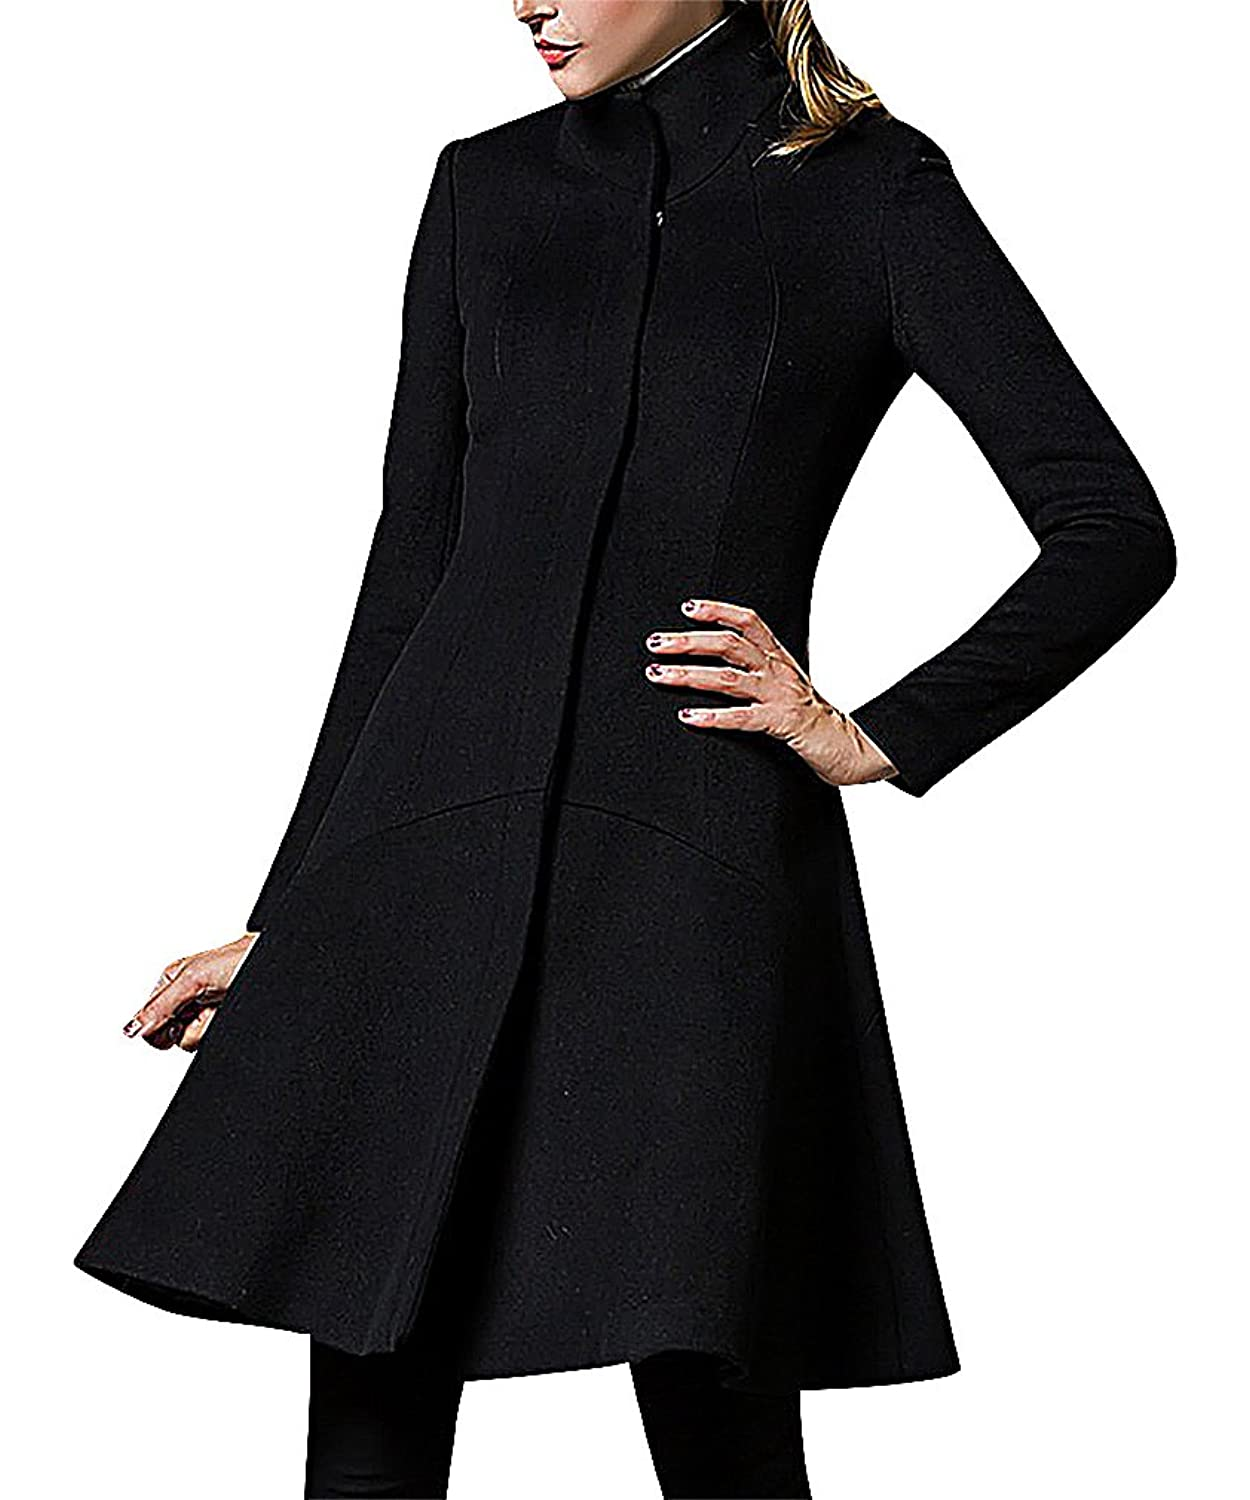 Maze, Women's Red Black Elegant Zipped Waisted Stand Collar Seamed Dress Coat